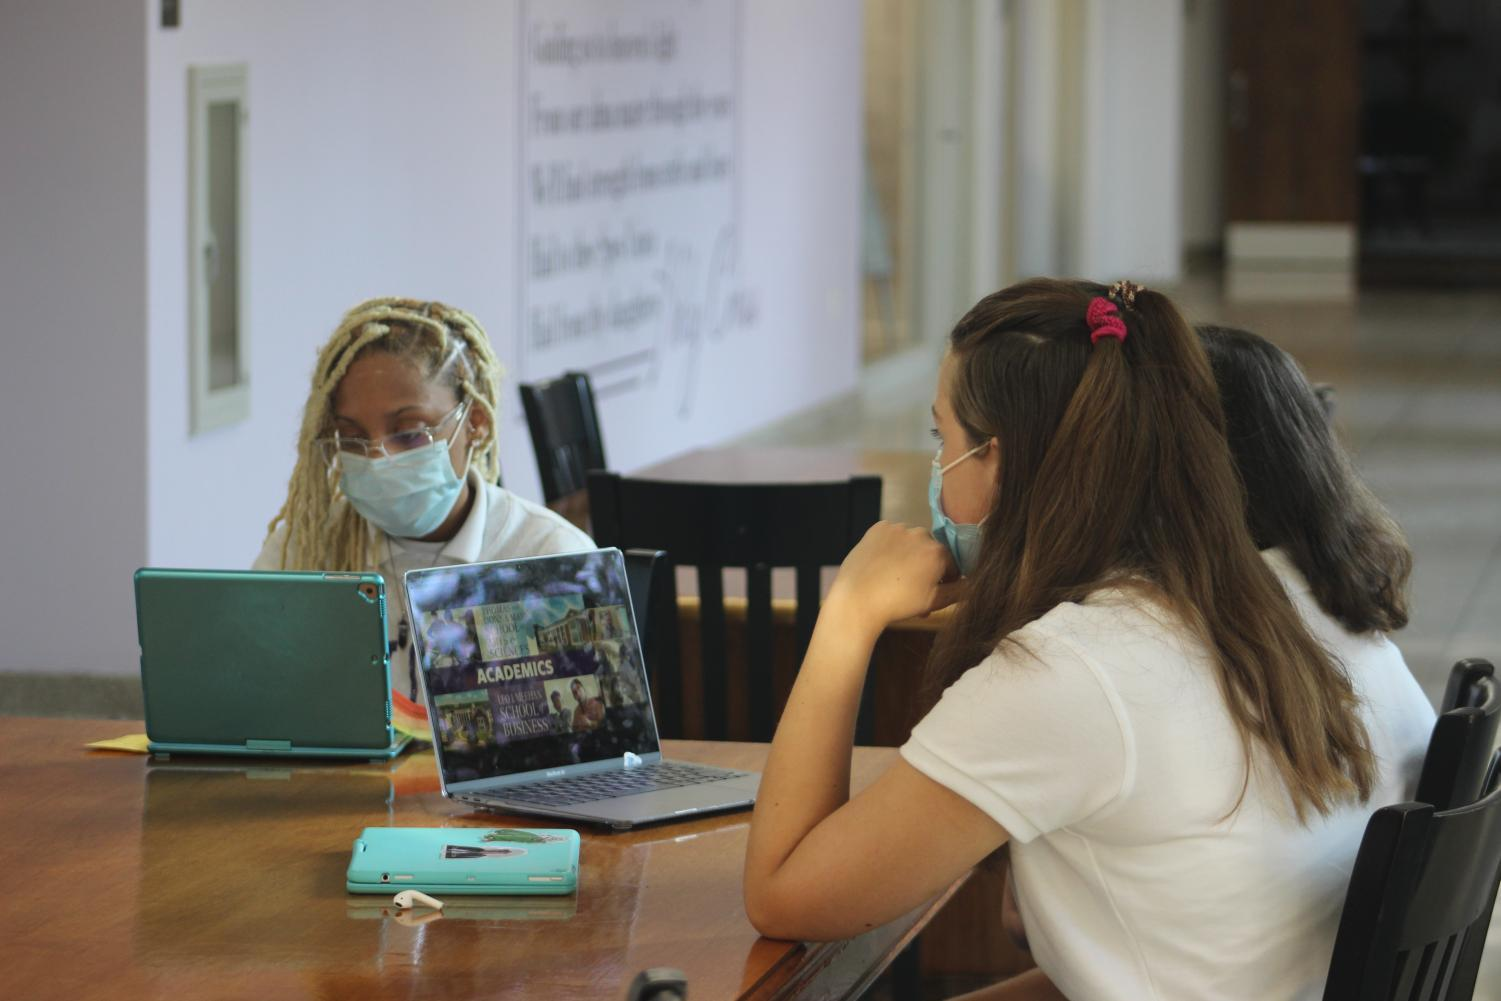 Students at a virtual college visit